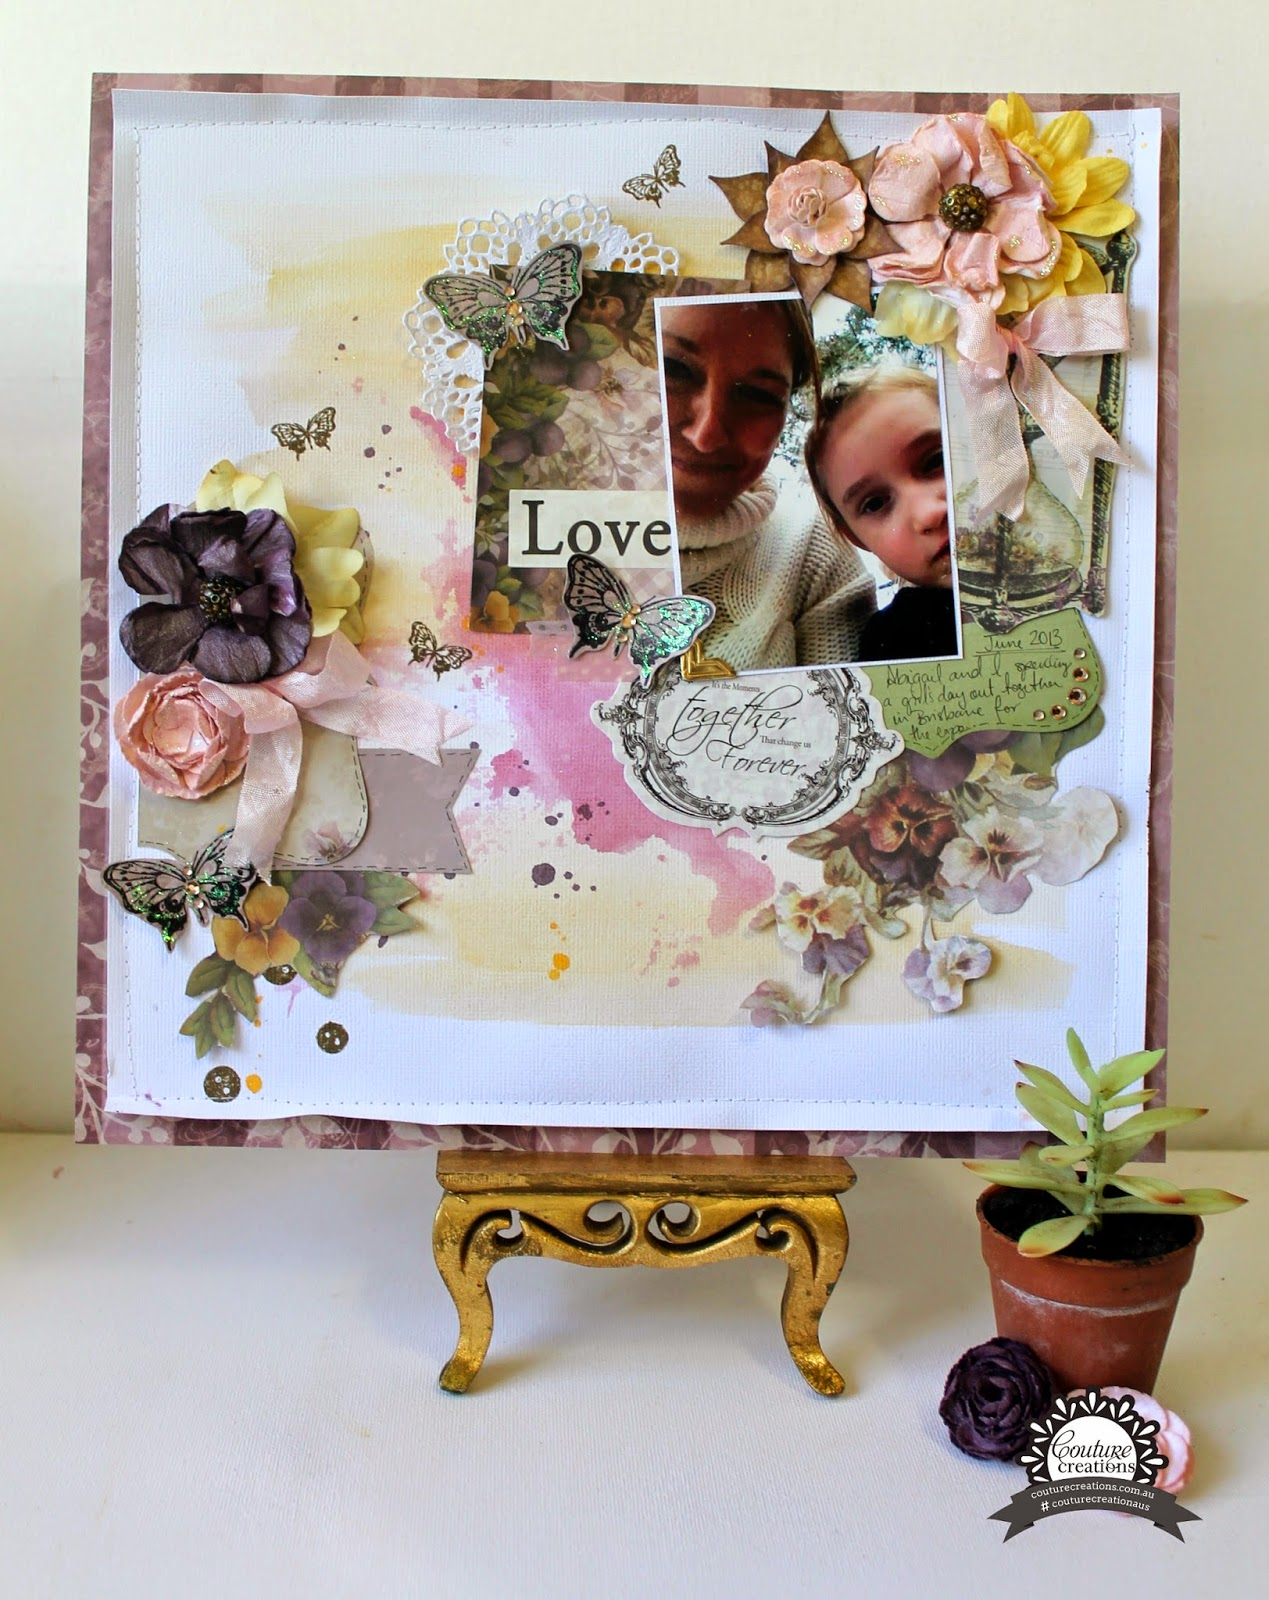 """Love"" layout by Bernii Miller for Couture Creations using the Hearts Ease collection."